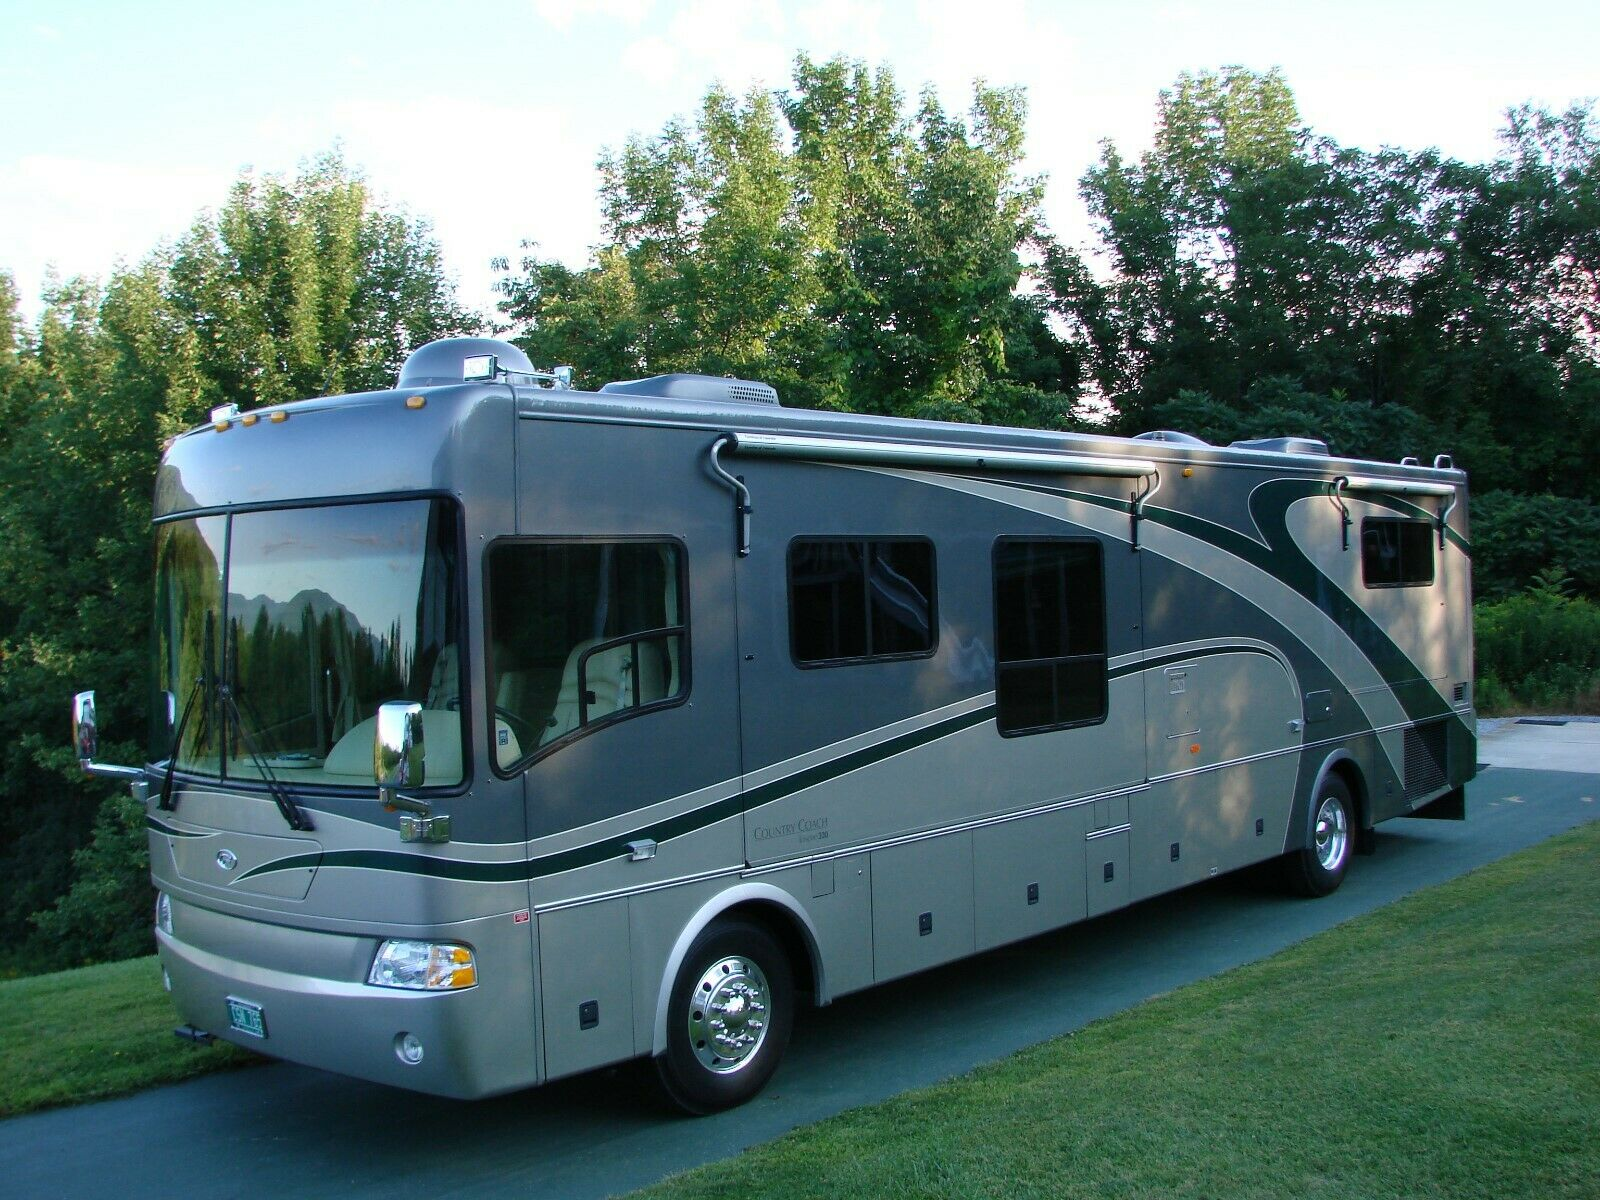 low miles 2005 Country Coach camper